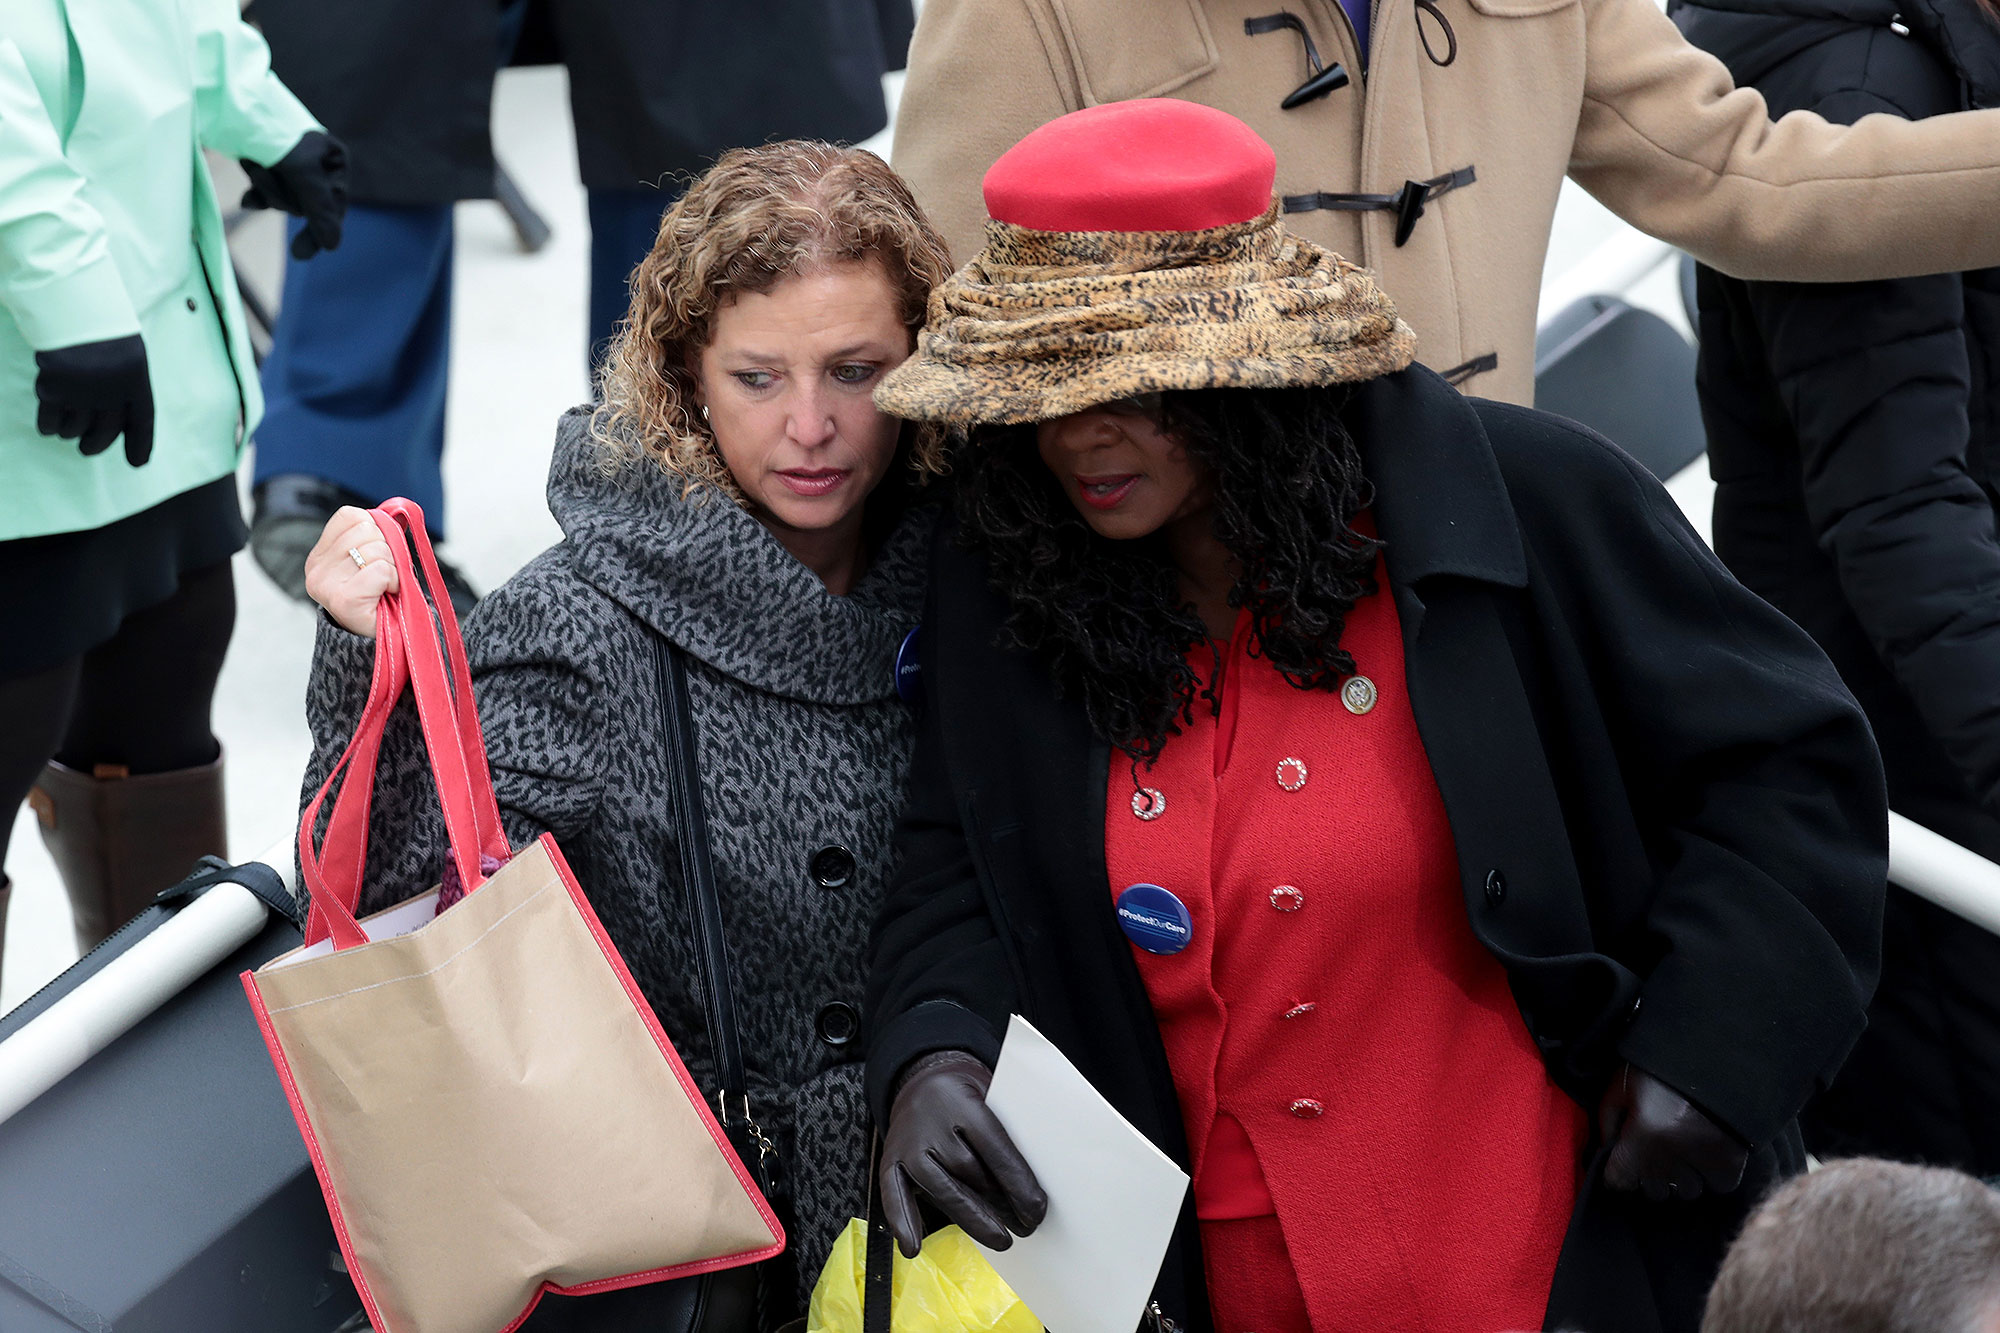 WASHINGTON, DC - JANUARY 20: Rep. Debbie Wasserman-Schultz (D-FL) arrives on the West Front of the U.S. Capitol on January 20, 2017 in Washington, DC. In today's inauguration ceremony Donald J. Trump becomes the 45th president of the United States. (Photo by Scott Olson/Getty Images)